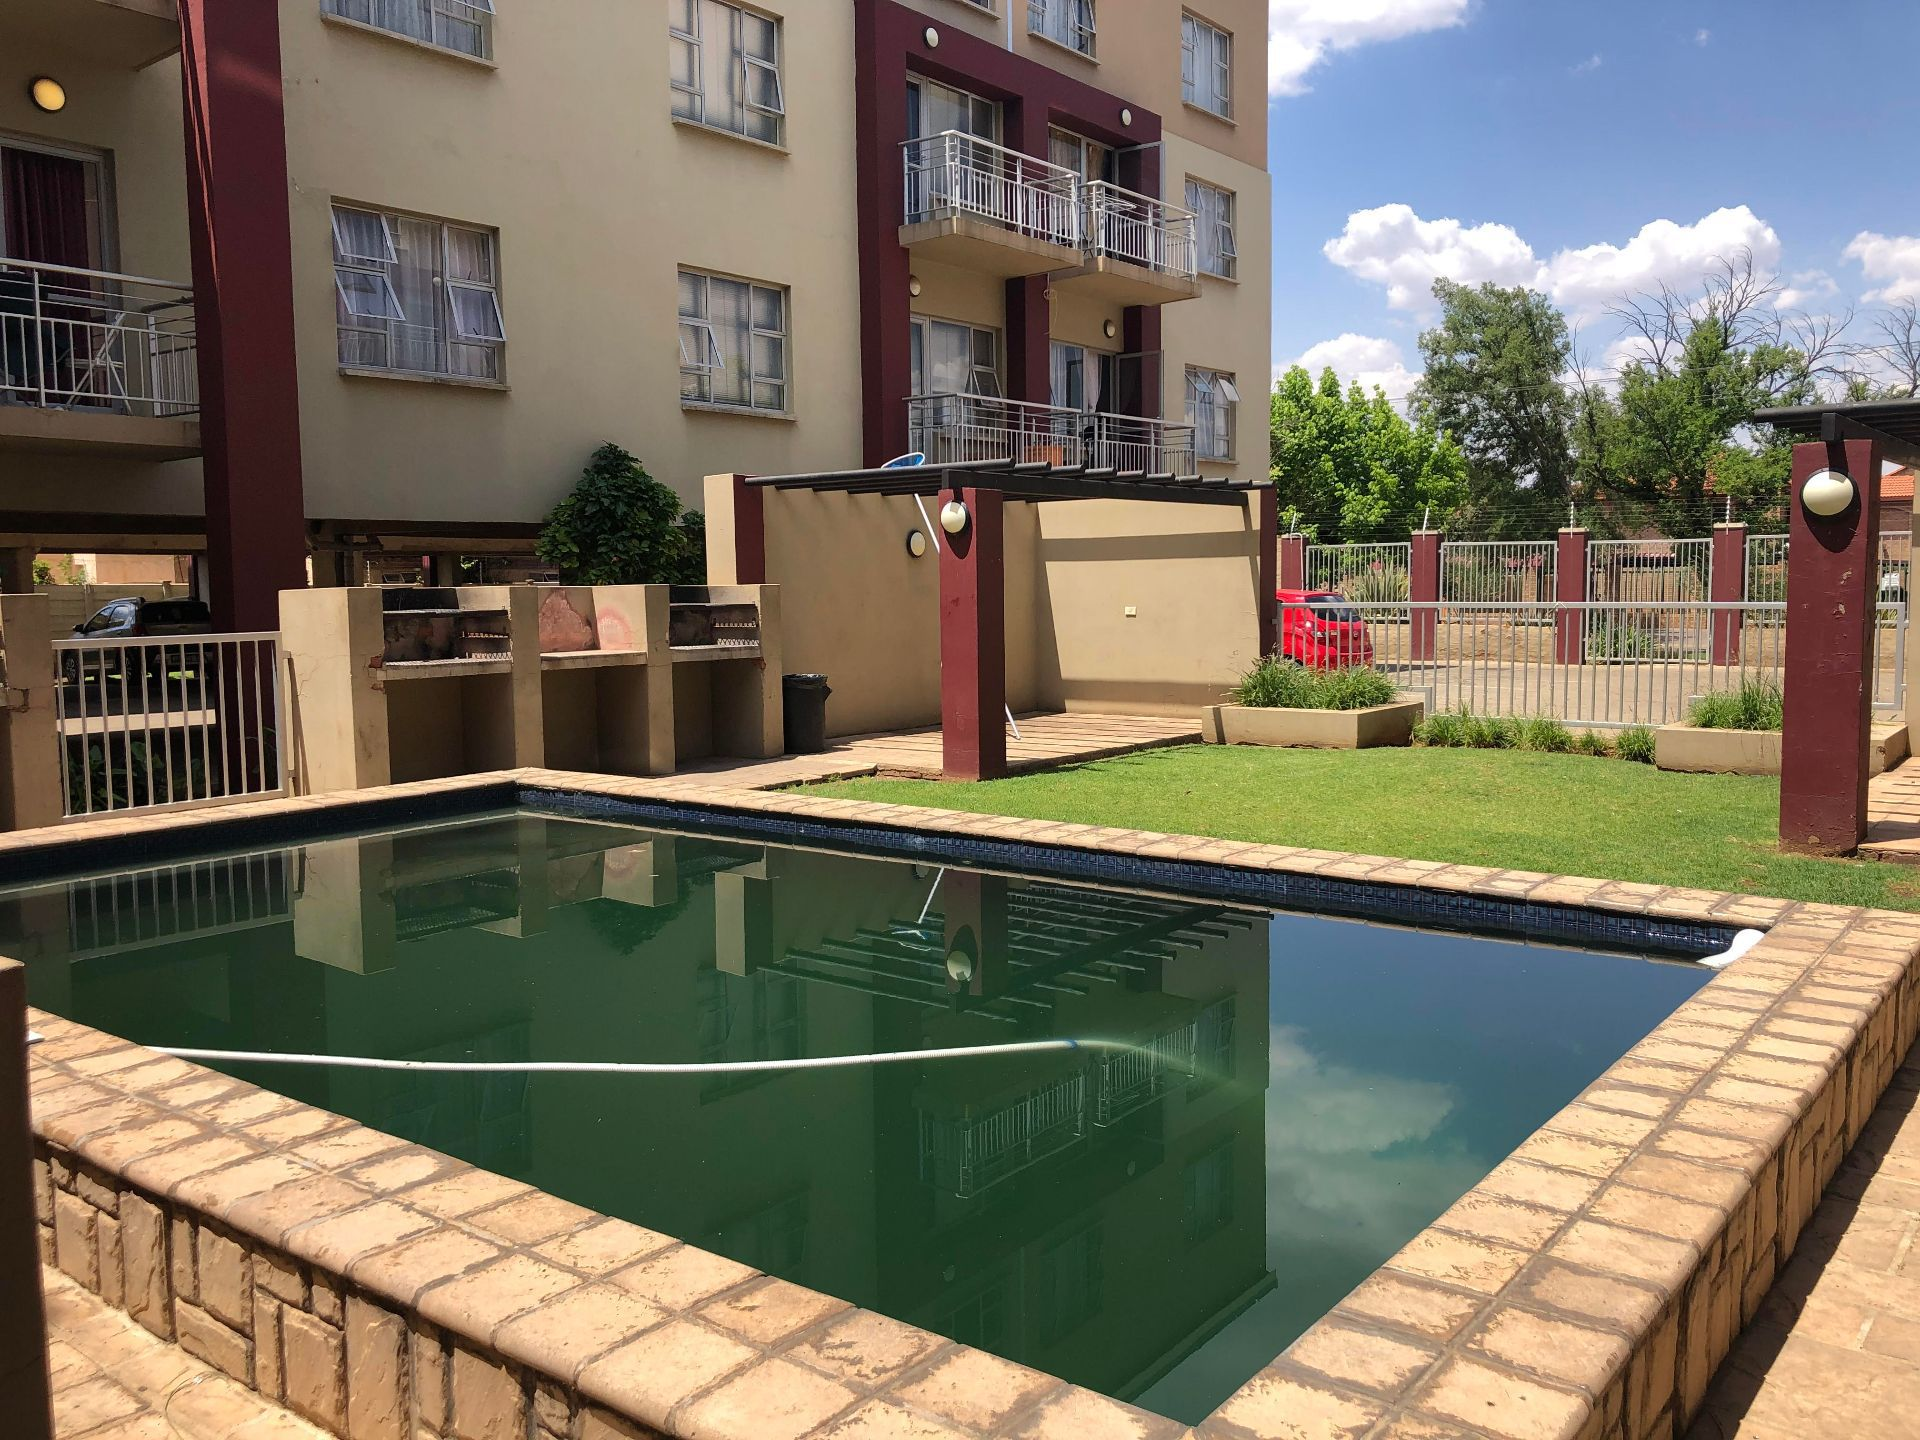 House in Kanonierspark - Pool 2.jpg